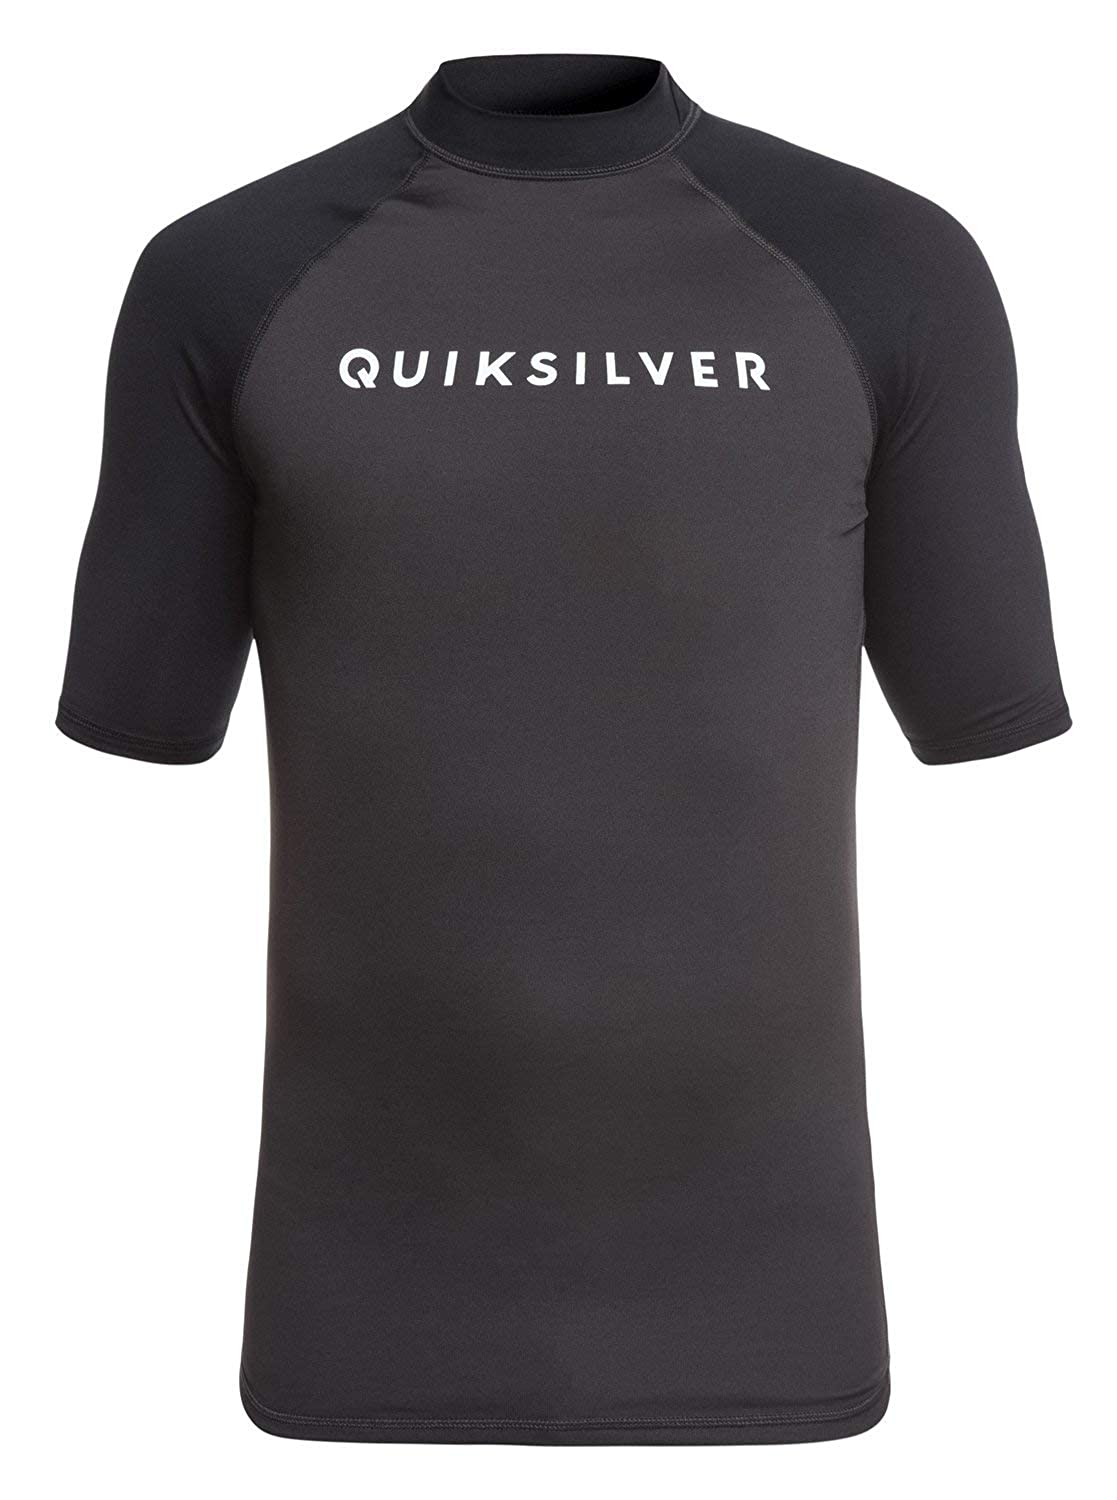 Quiksilver Always There T-Shirt Uomo